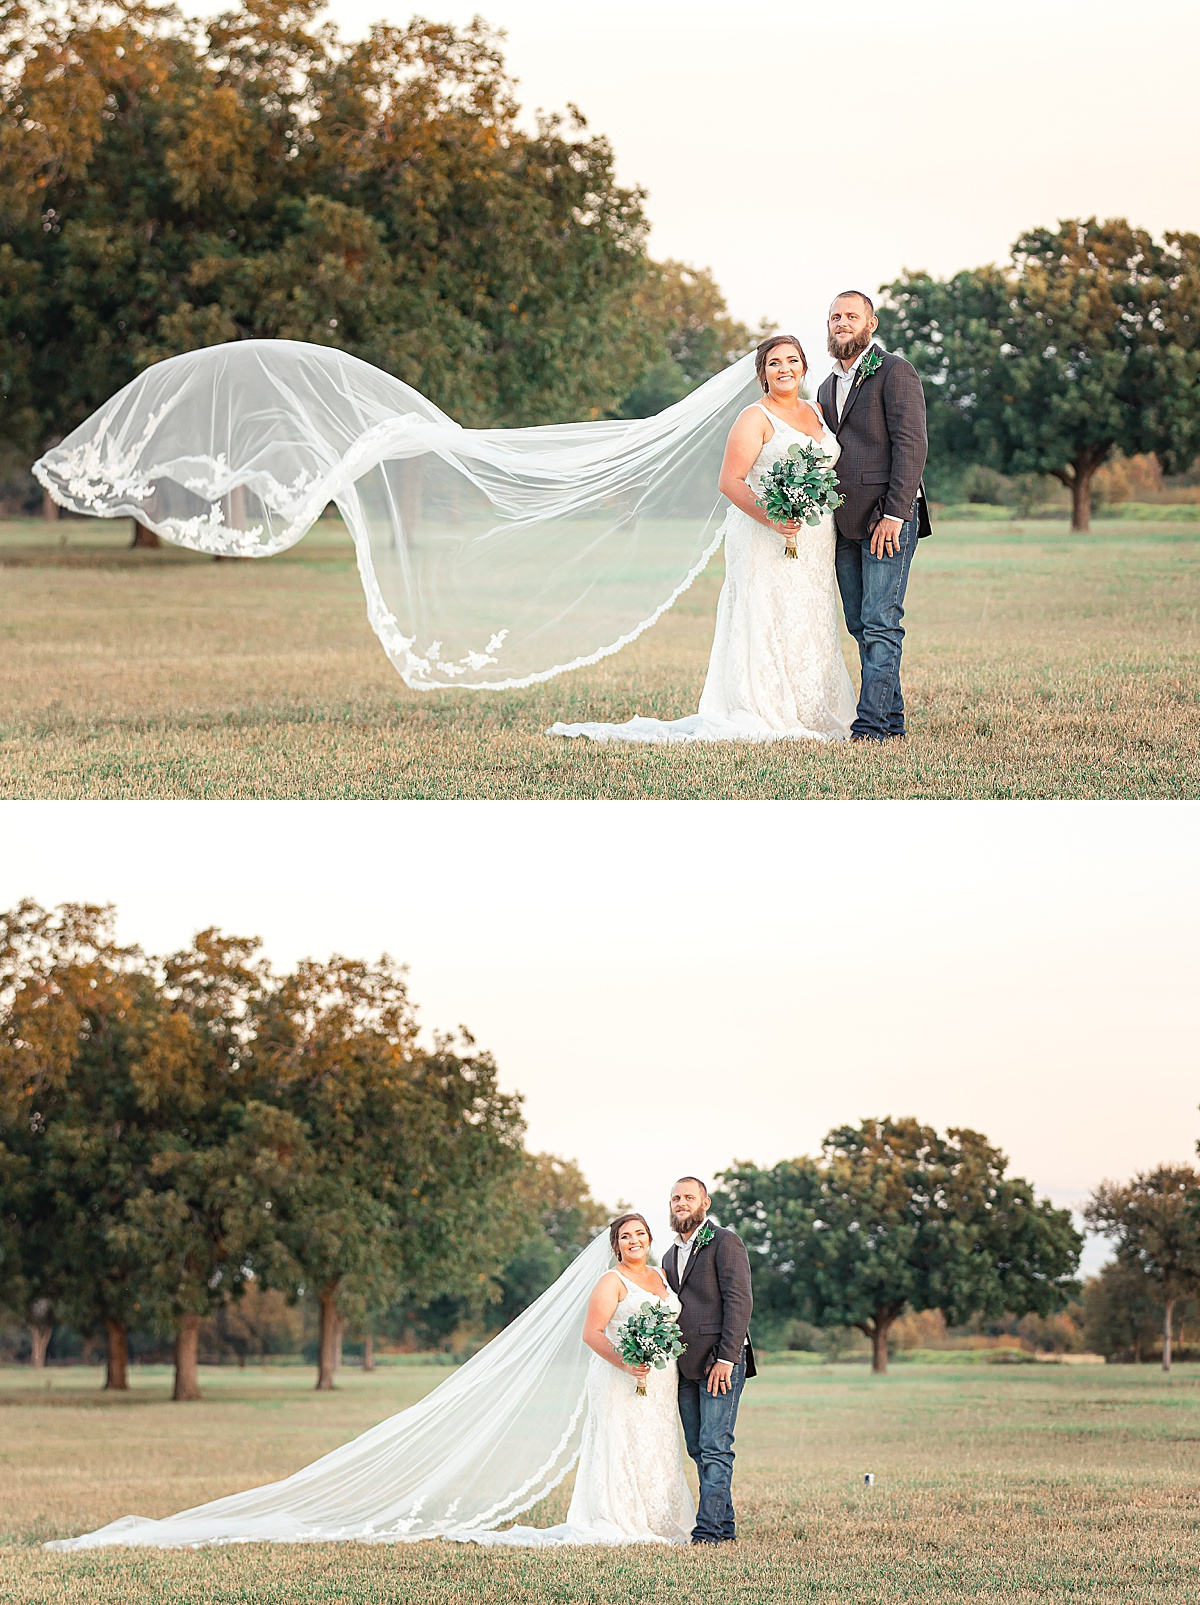 Rustic-Texas-Wedding-Hollow-Creek-Ranch-Carly-Barton-Photography_0086.jpg